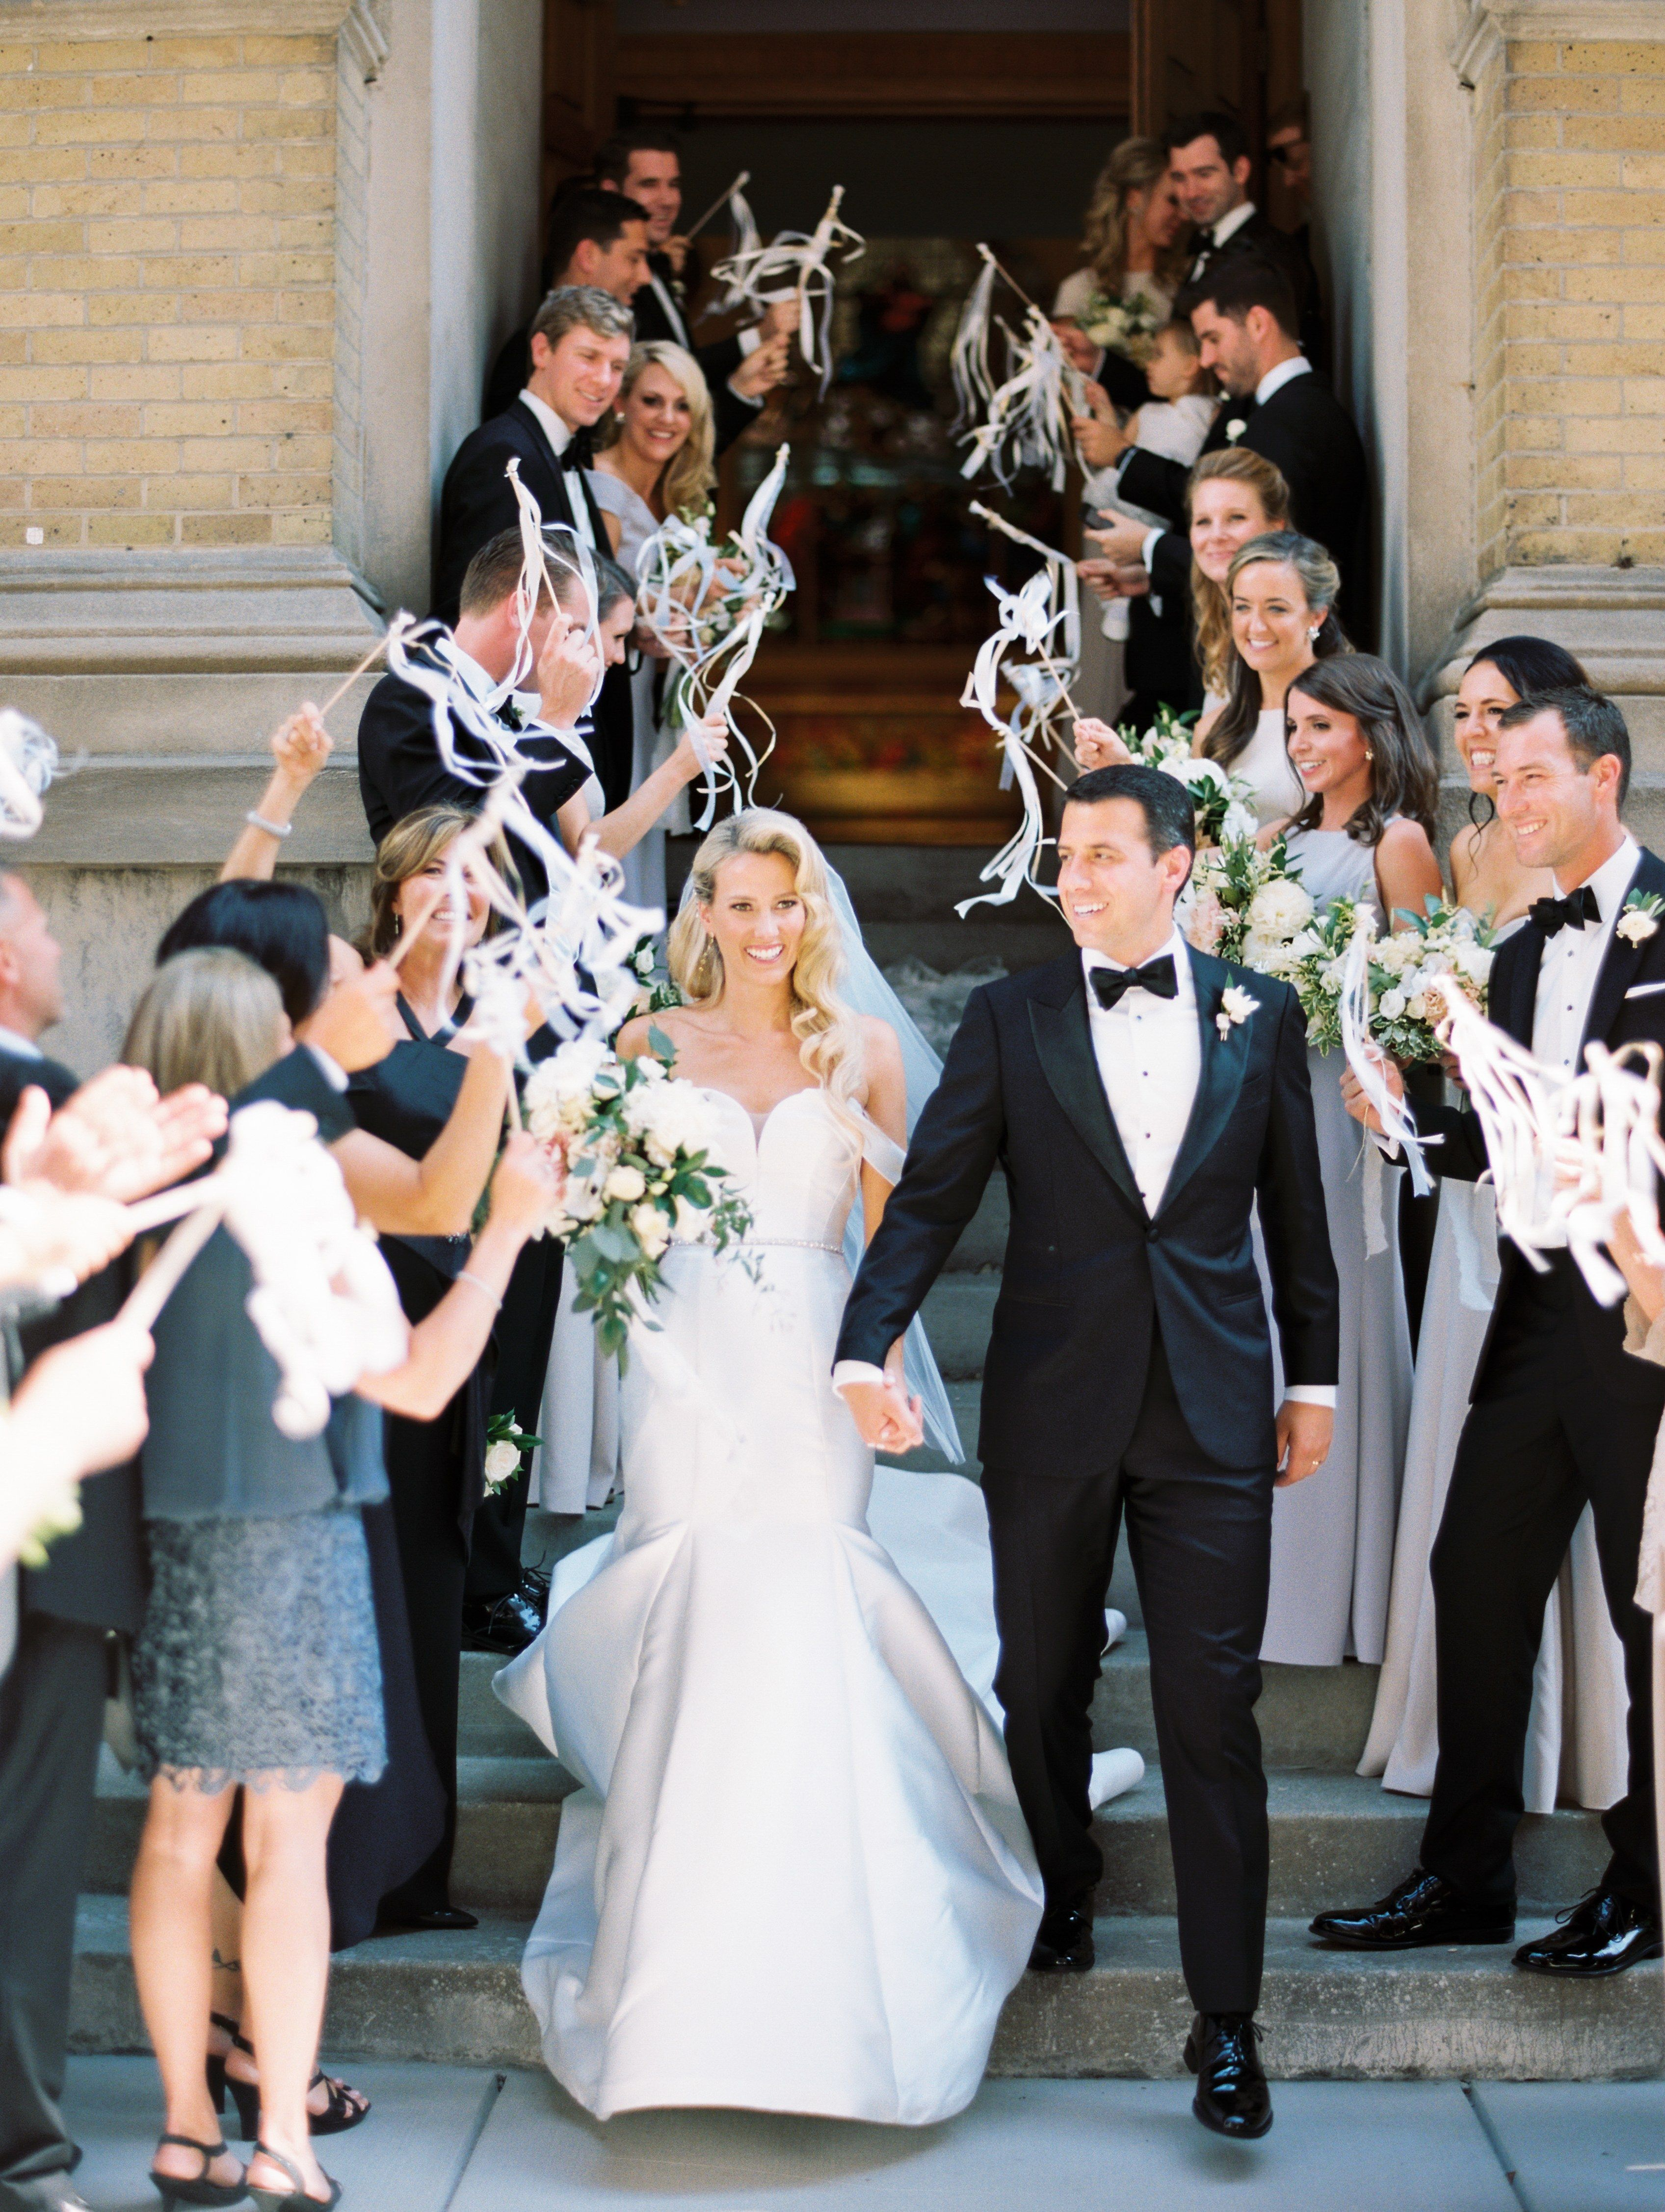 Chicago wedding dresses  A Timeless Chicago Wedding in Lincoln Park  Real Weddings on Blogs